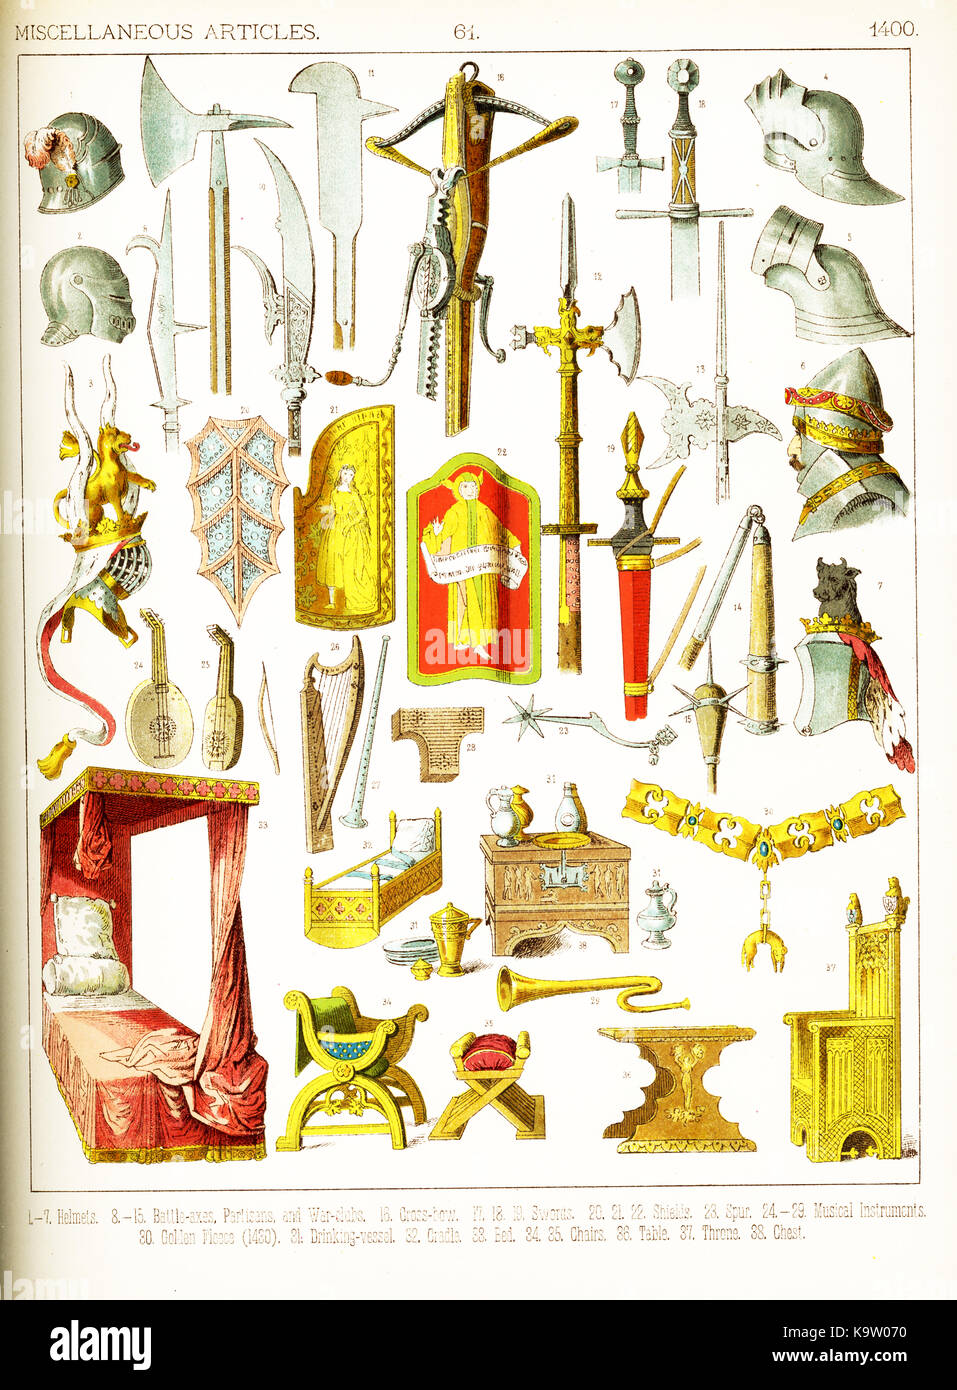 The medieval artifacts shown here are European and date to around 1400. They are: 1-7: helmets; 8-15: battle axes, - Stock Image